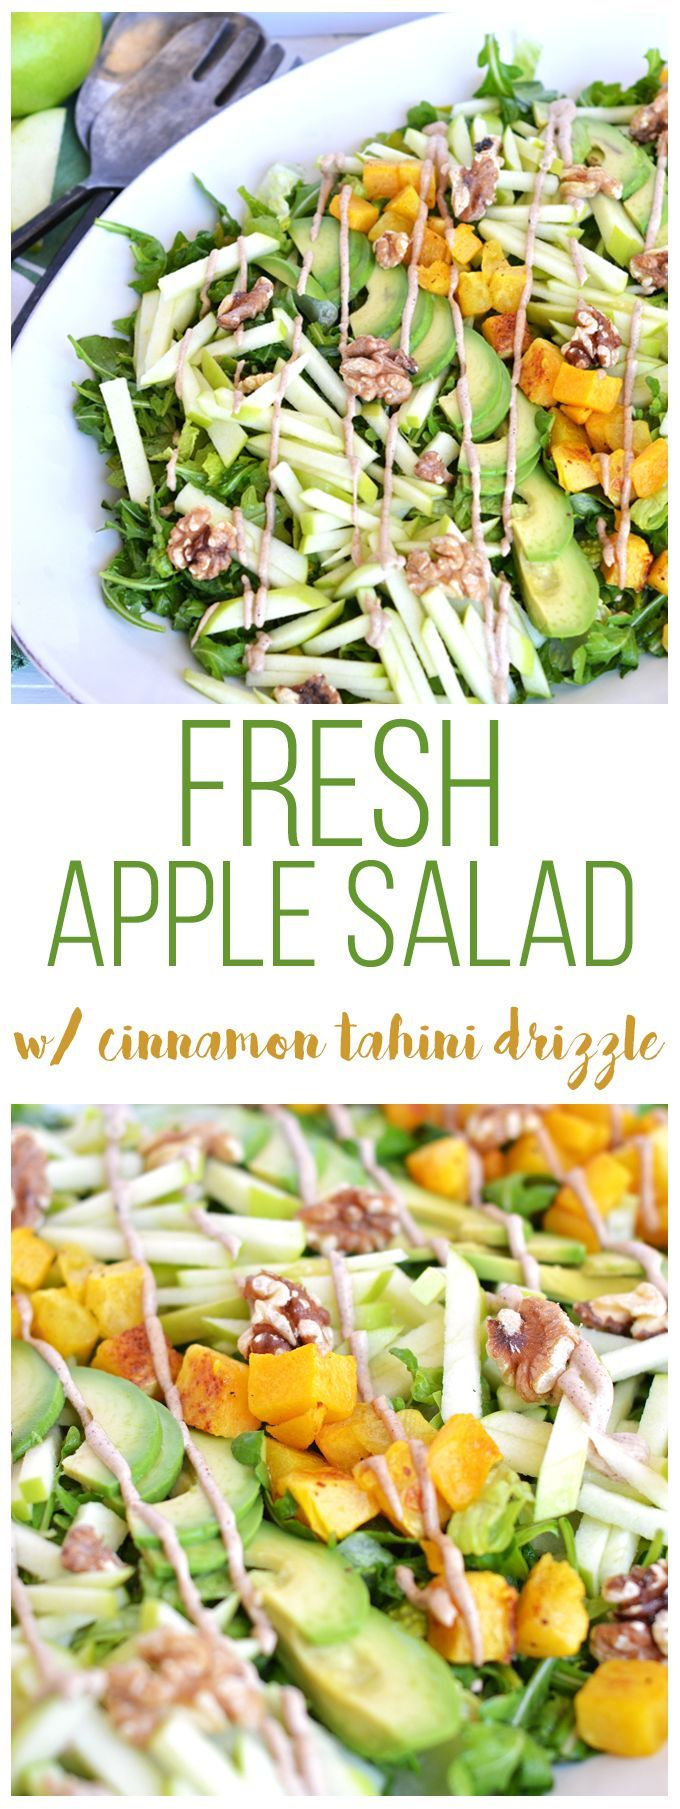 This Fresh Apple Salad with Cinnamon Tahini Drizzle is packed with apples, roasted butternut squash, avocado, walnuts, dressed with apple cider vinaigrette and drizzled with cinnamon tahini sauce! Whole30 and paleo approved!